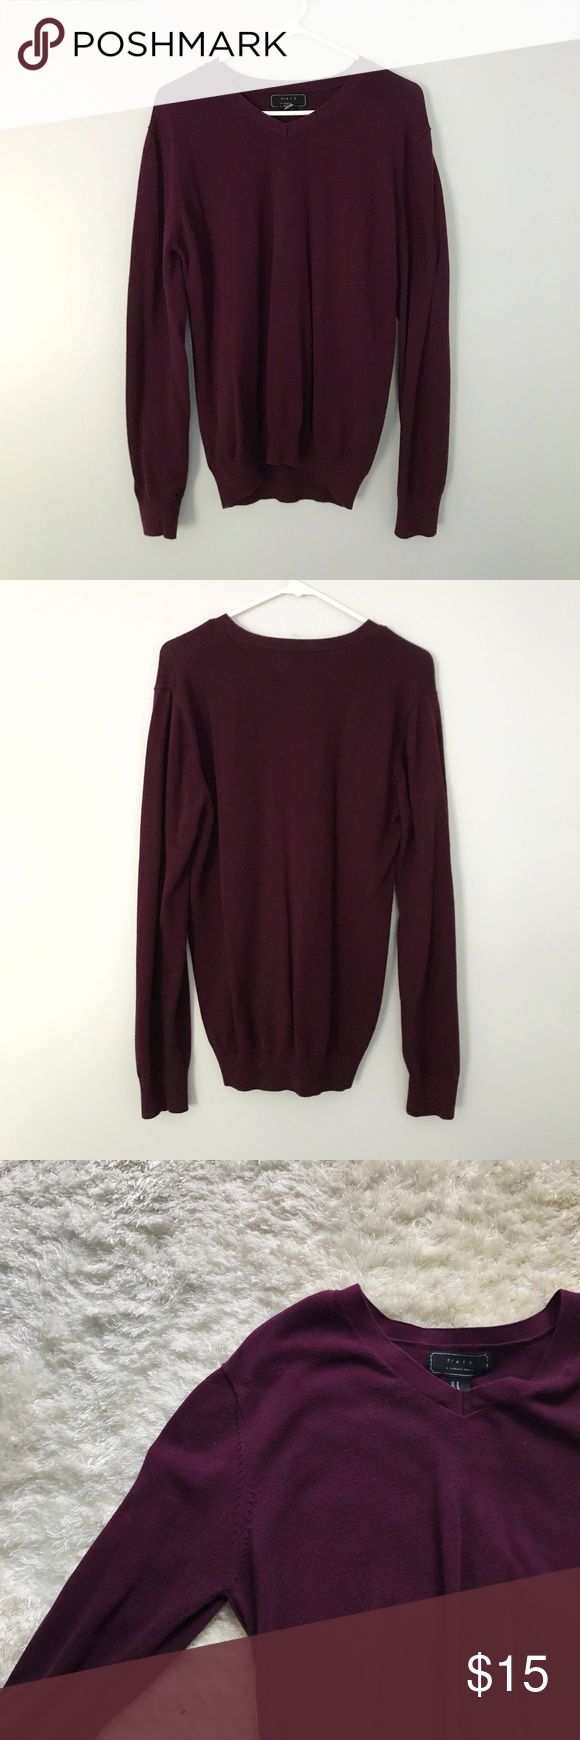 V-Neck Wool Sweater 21 Men Wool Sweater in maroon. Relatively light and stays put where it's worn. 21men Sweaters V-Neck